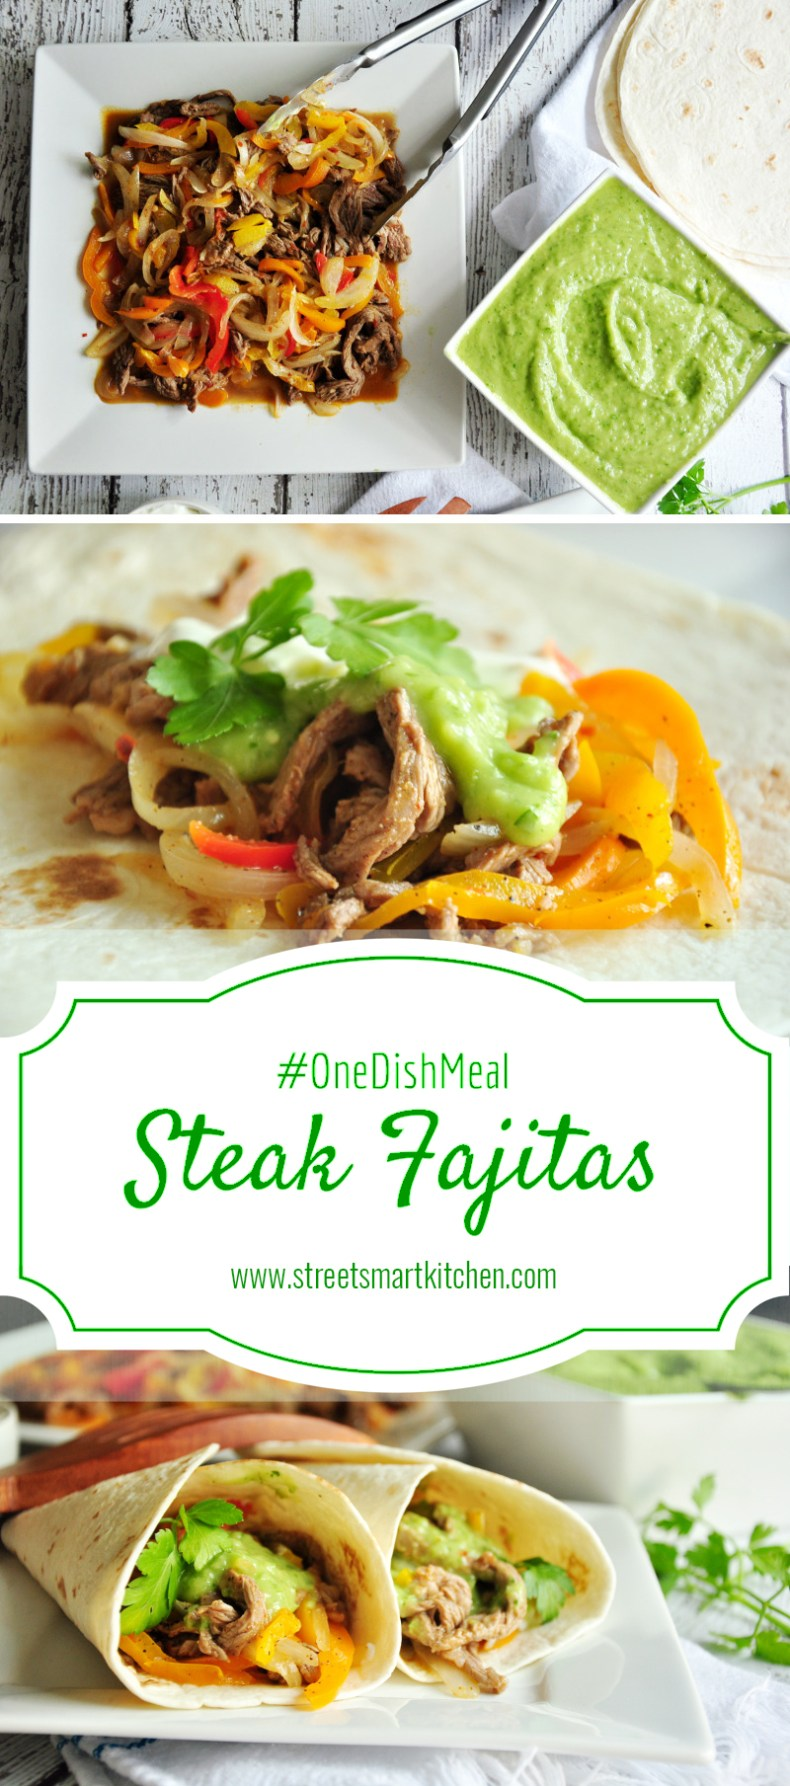 Super yummy steak fajitas ready in just 20 minutes. Top the filling with our all-time favorite salsa verde to complete an amazing one dish meal!